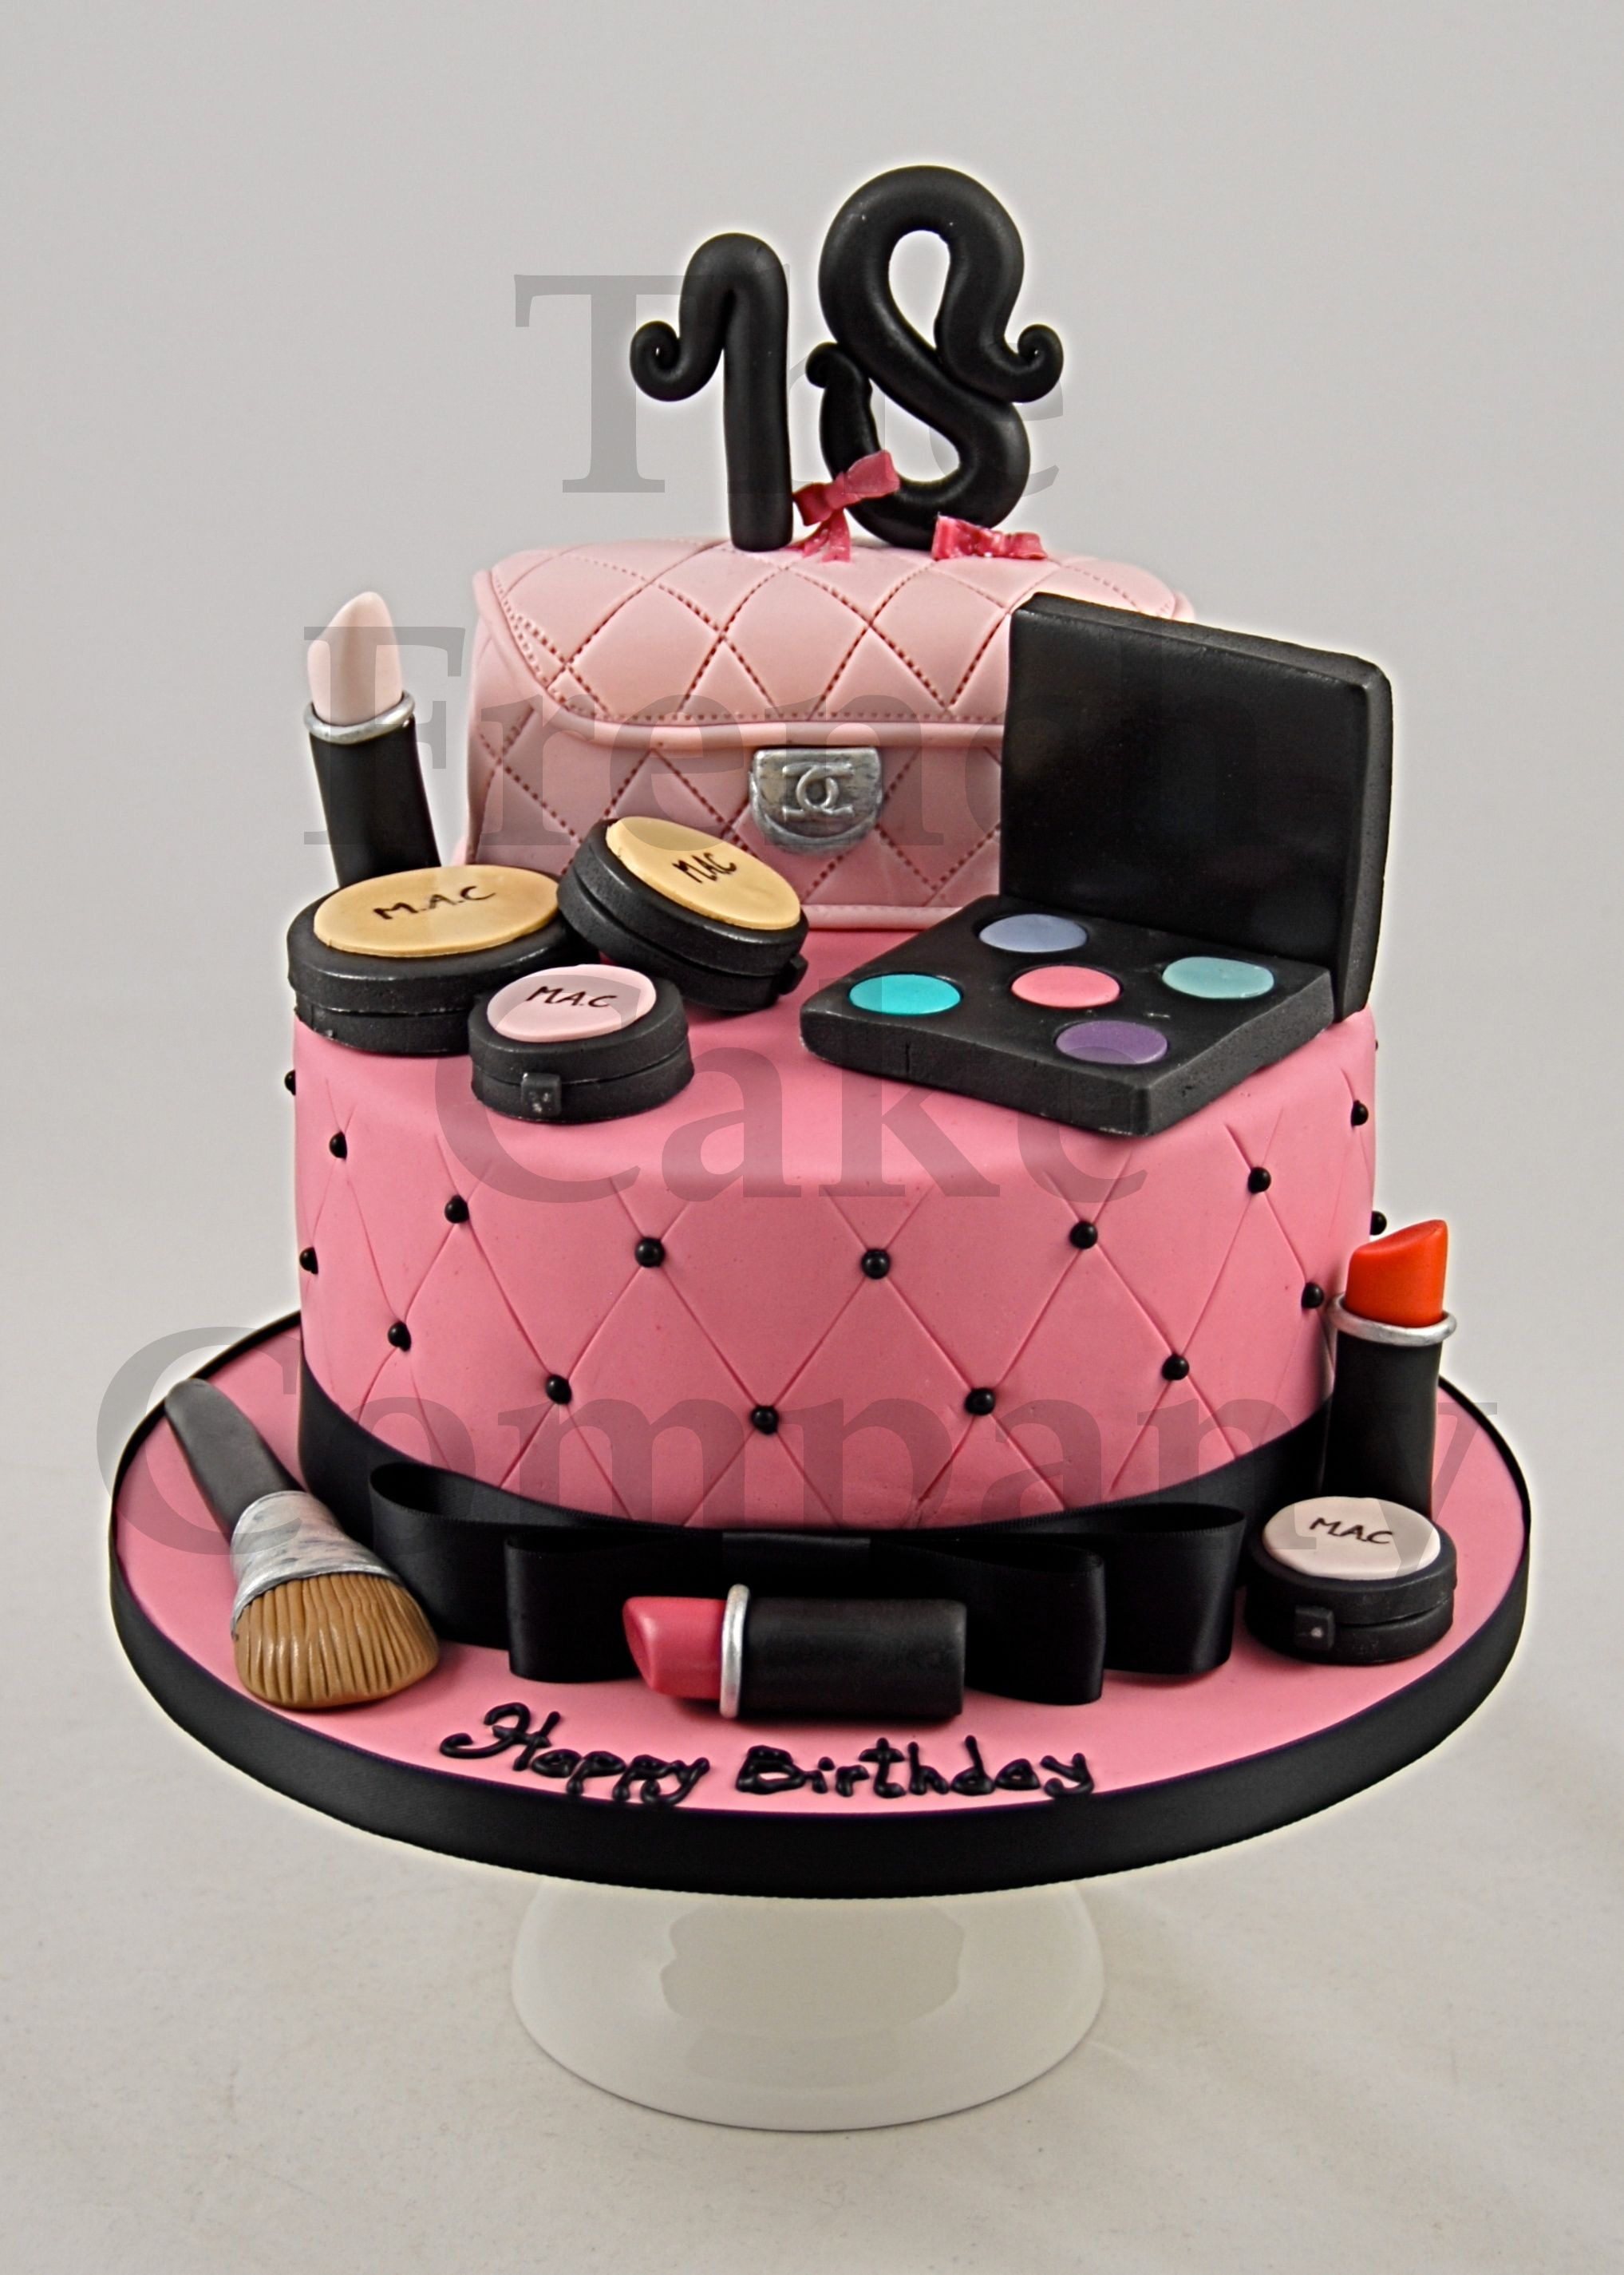 Cake Images For Teenager : Cake for teenagers Make up Camas fondat Pinterest ...